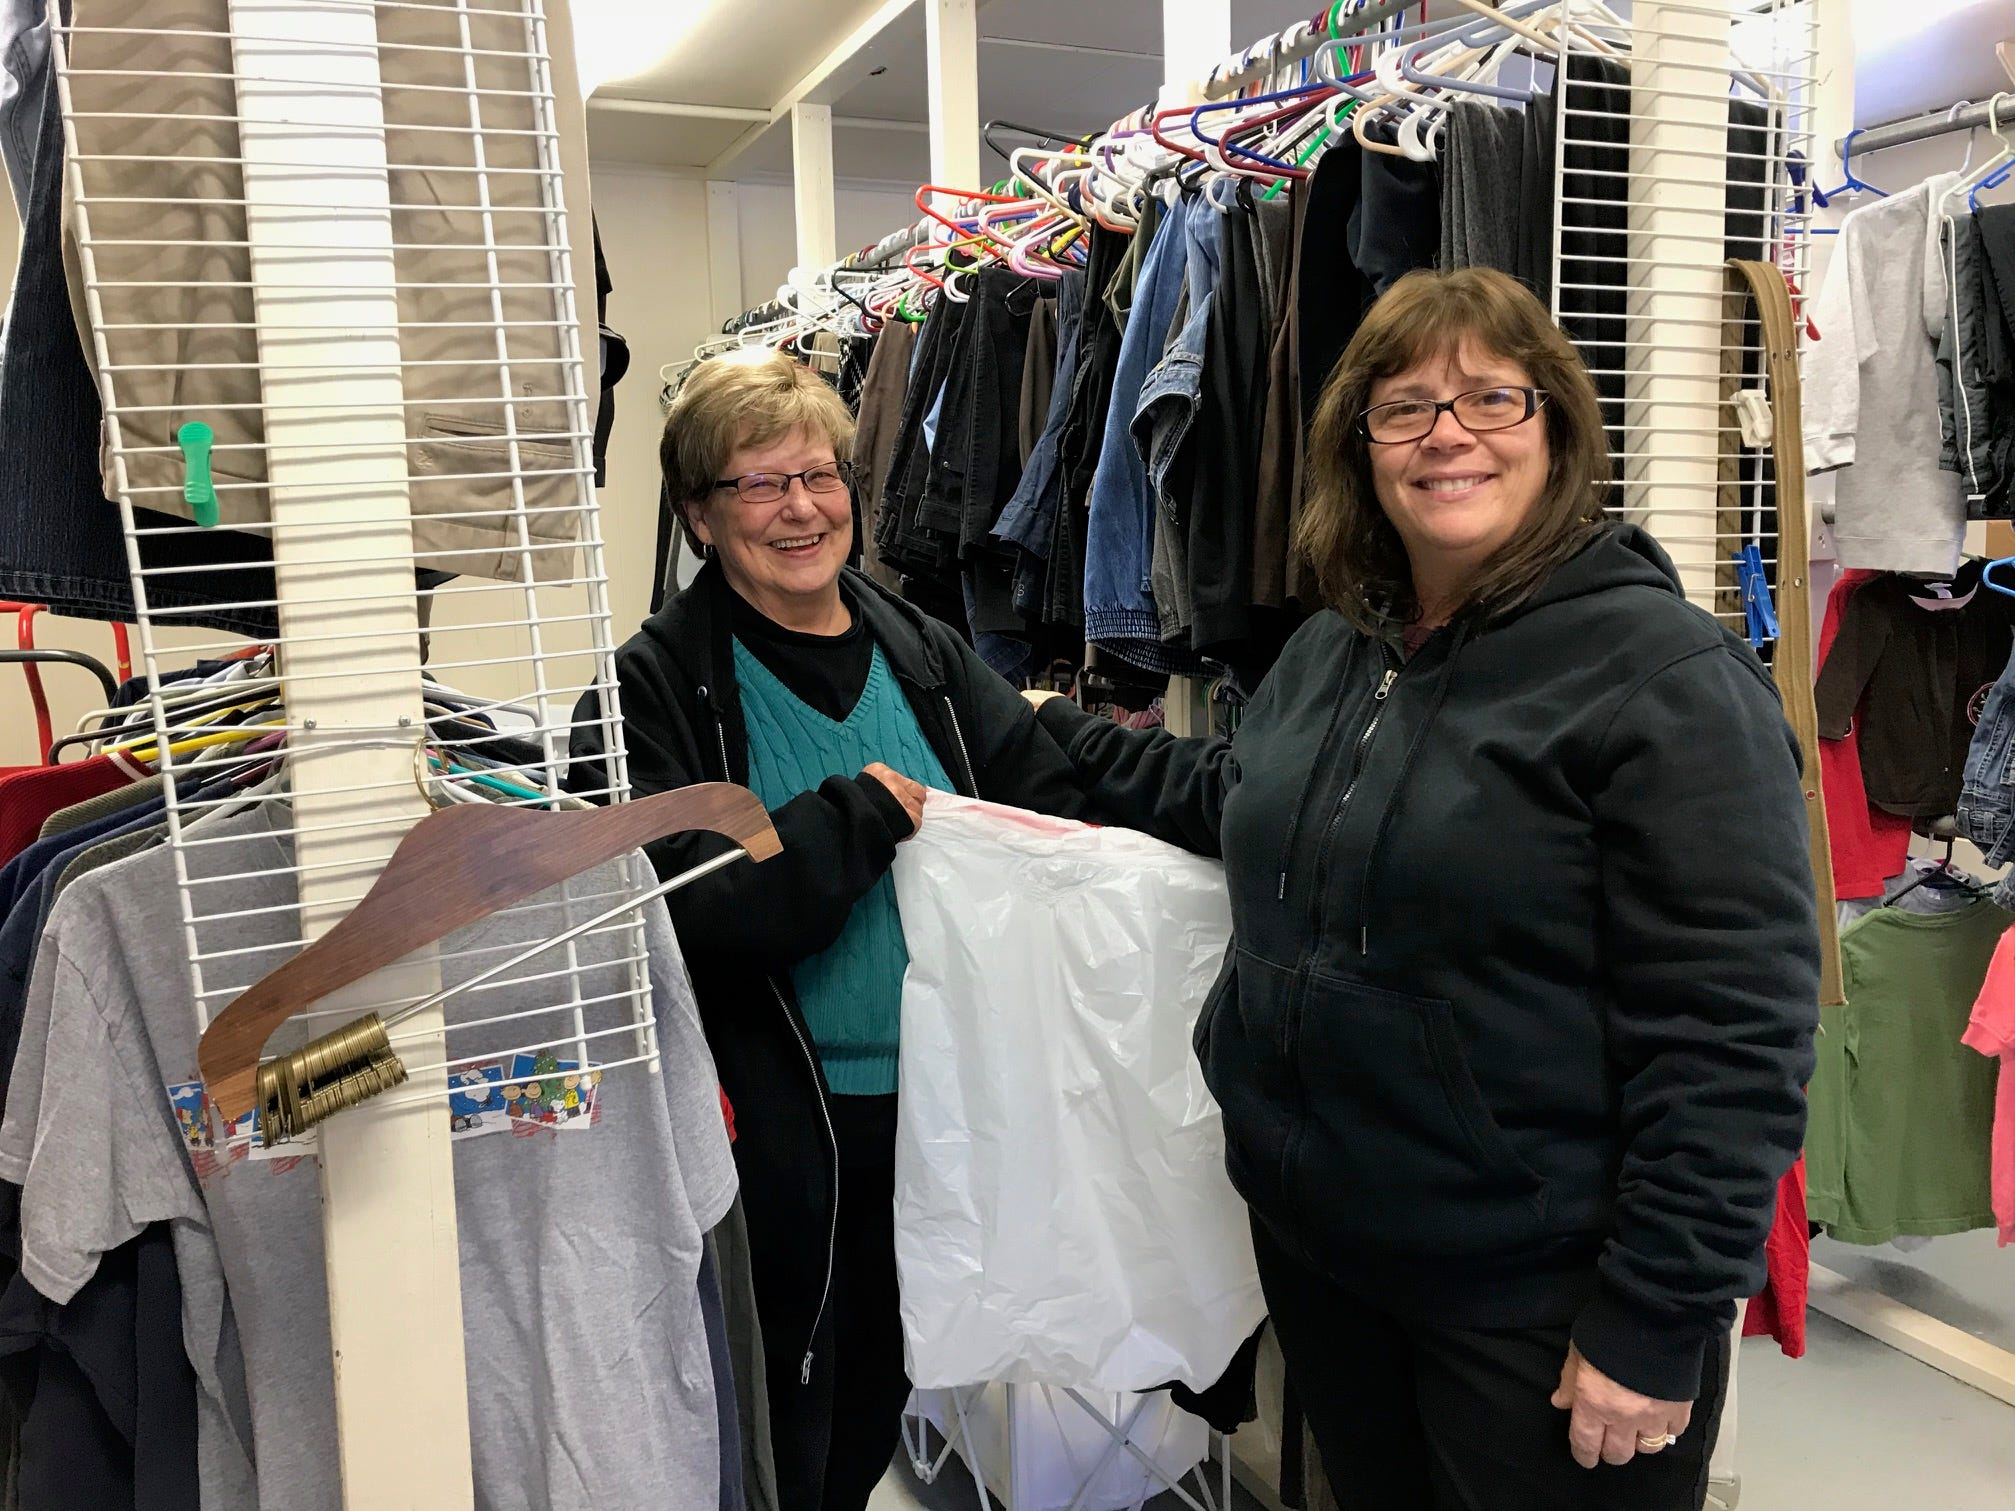 The Crisis Room, a ministry of the United Methodist Church on Ryders Lane in East Brunswick, is there to lend a helping hand year-round to those in need.